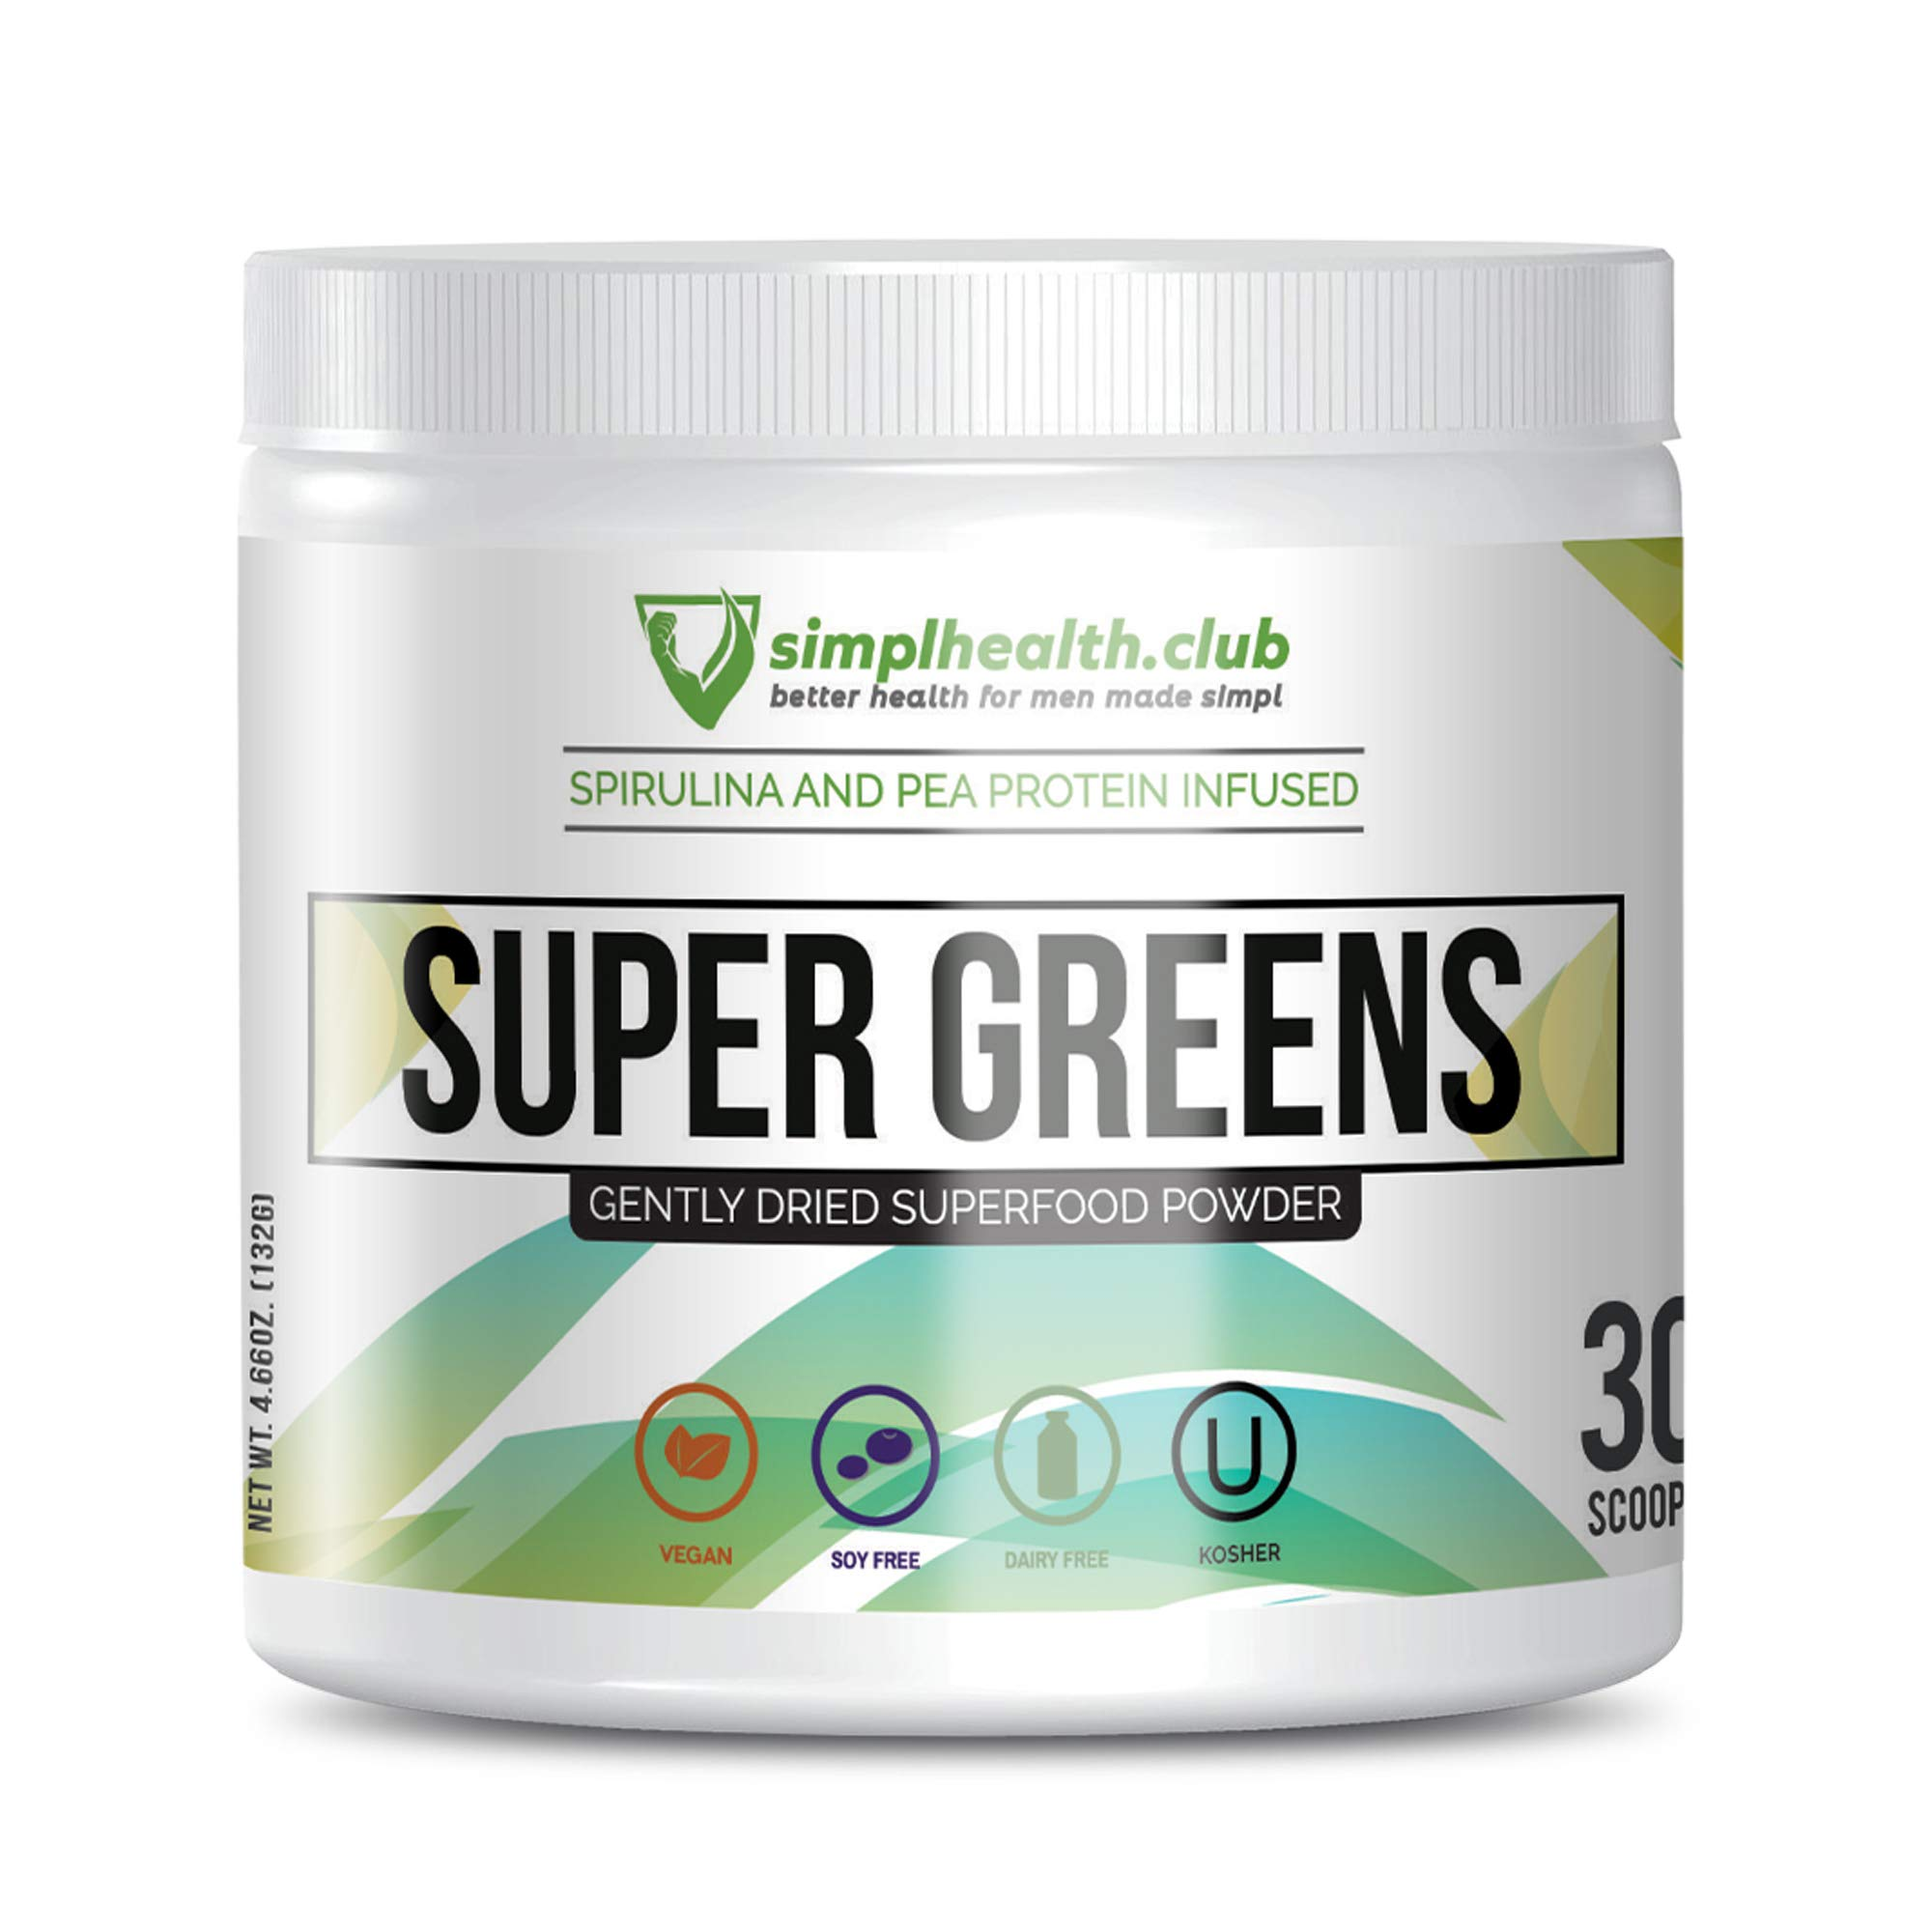 SimplHealth.Club Super Greens Powder for Men | Vegan & Nutrient-Dense Daily Supplement with Ashwagandha, Spirulina, and More | No Fillers & No Artificial Ingredients